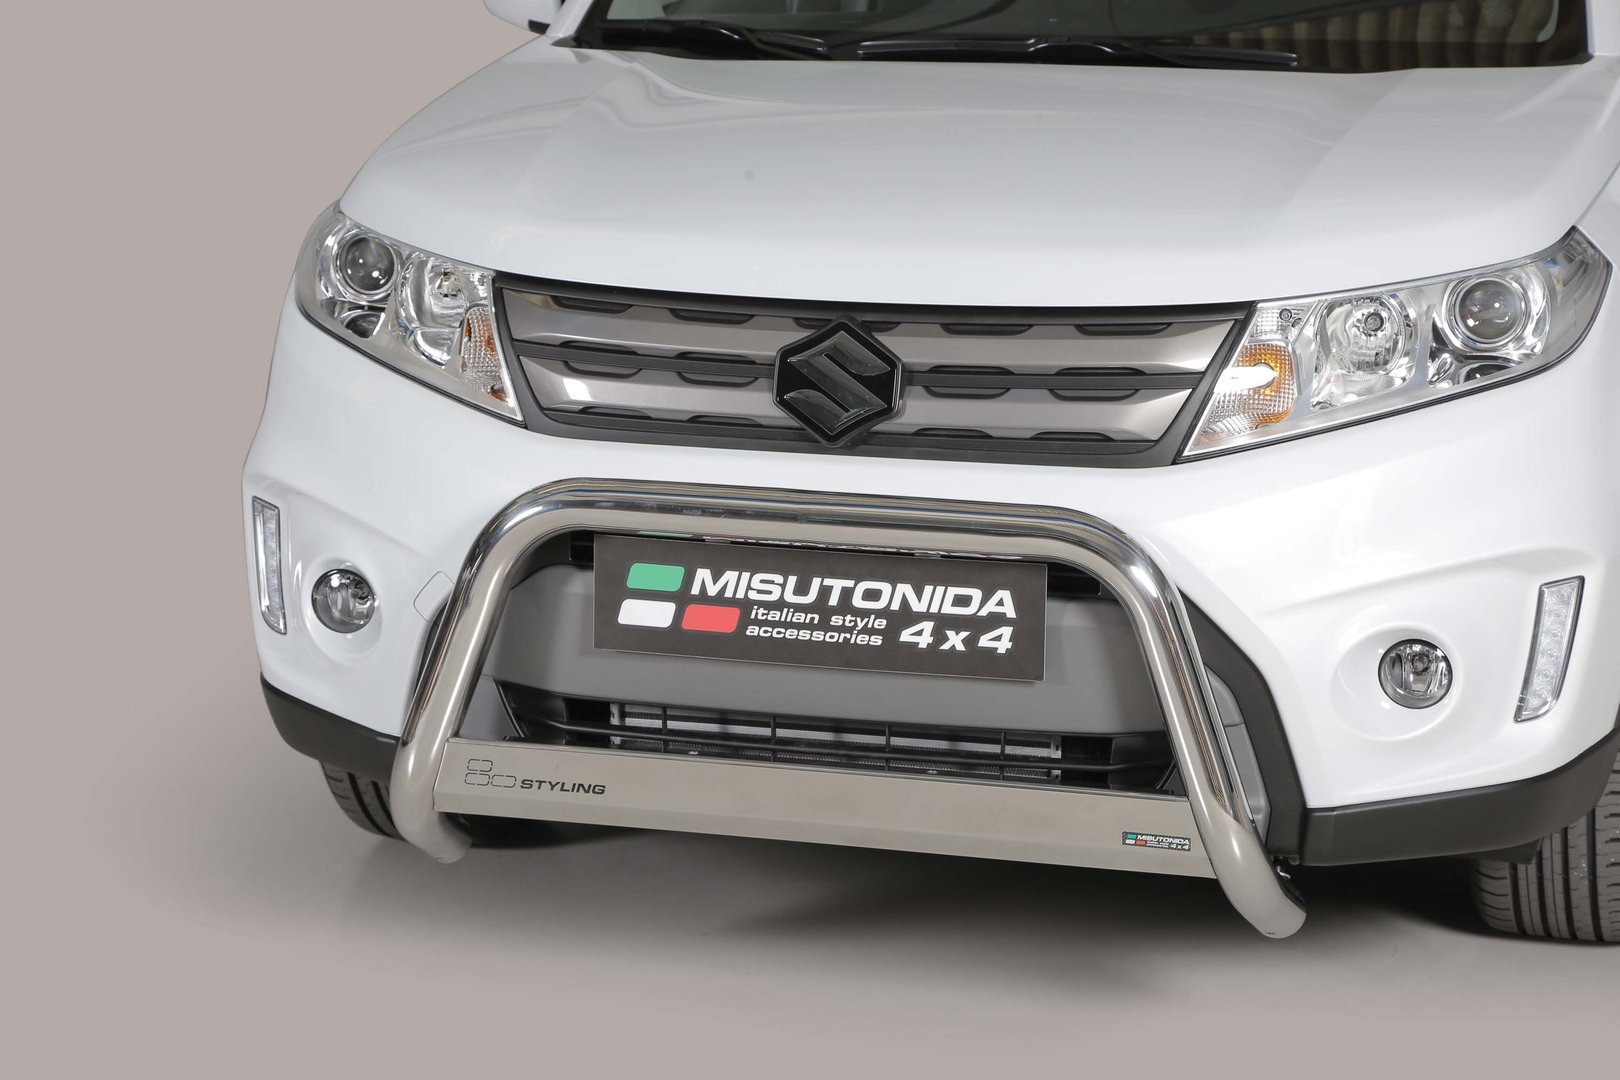 Suzuki Vitara Eu Front Guard 2015 Gt Tuning Parts To Suzuki